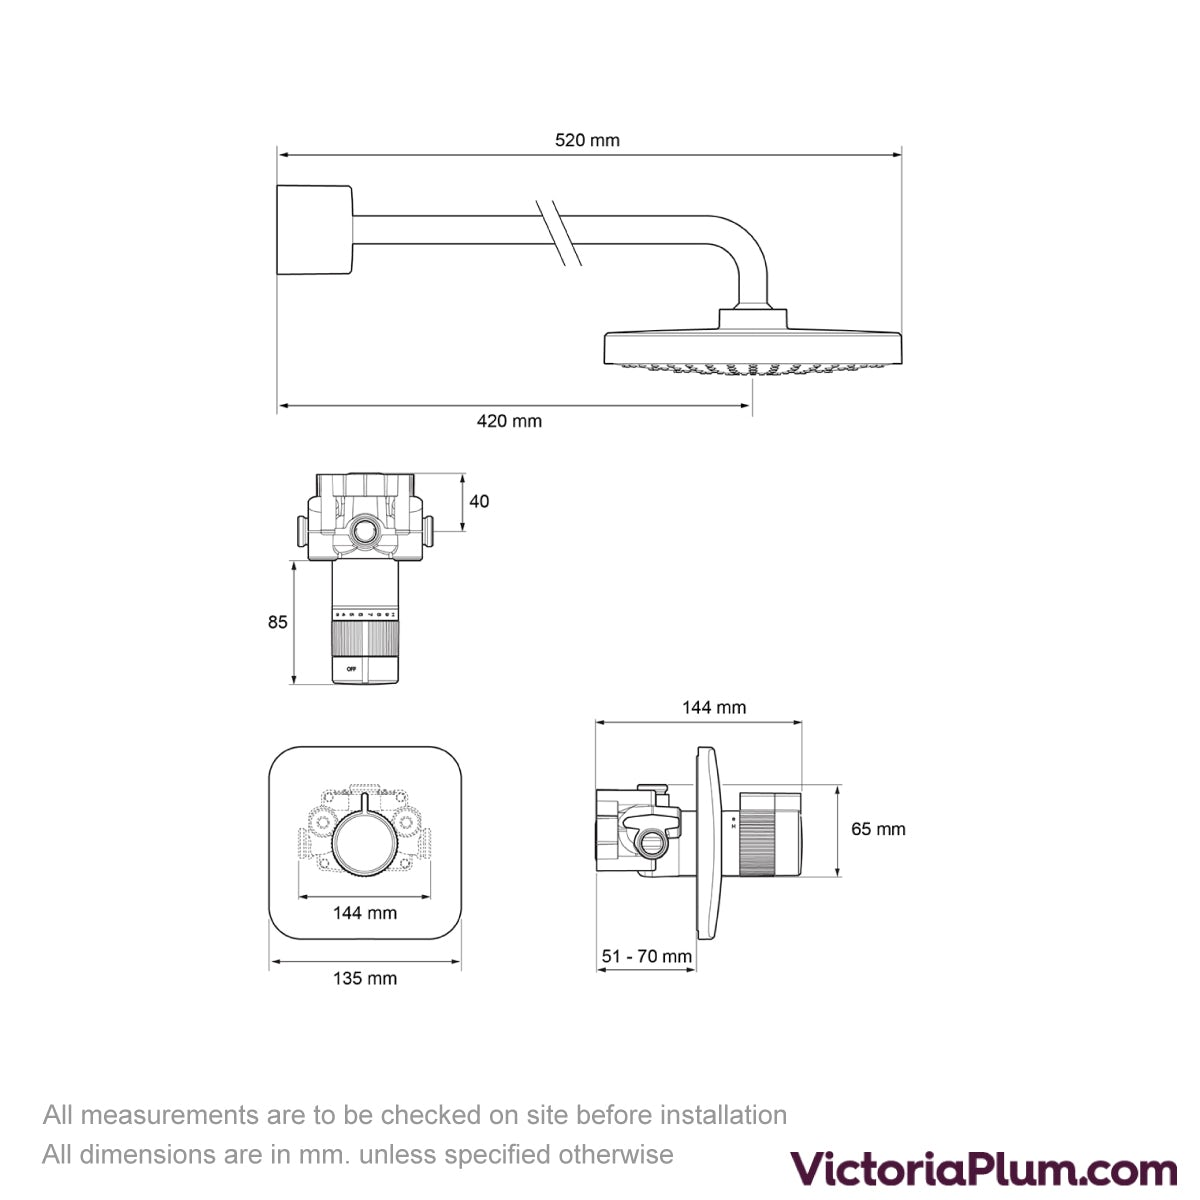 Dimensions for Mira Adept BIR thermostatic mixer shower